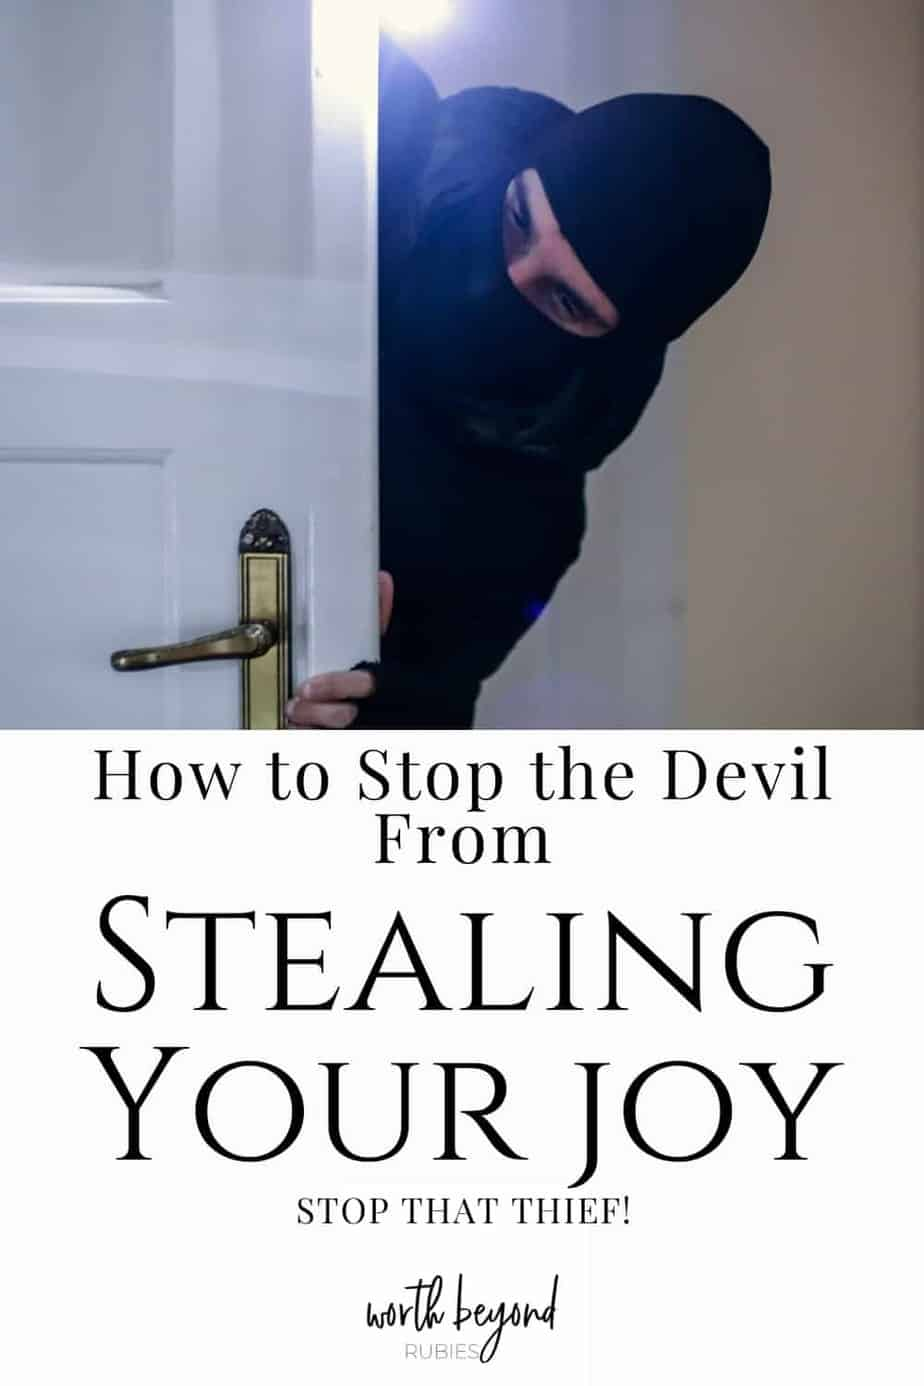 An image of a thief in all black slipping into a doorway and text that says How to Stop the Devil From Stealing Your Joy